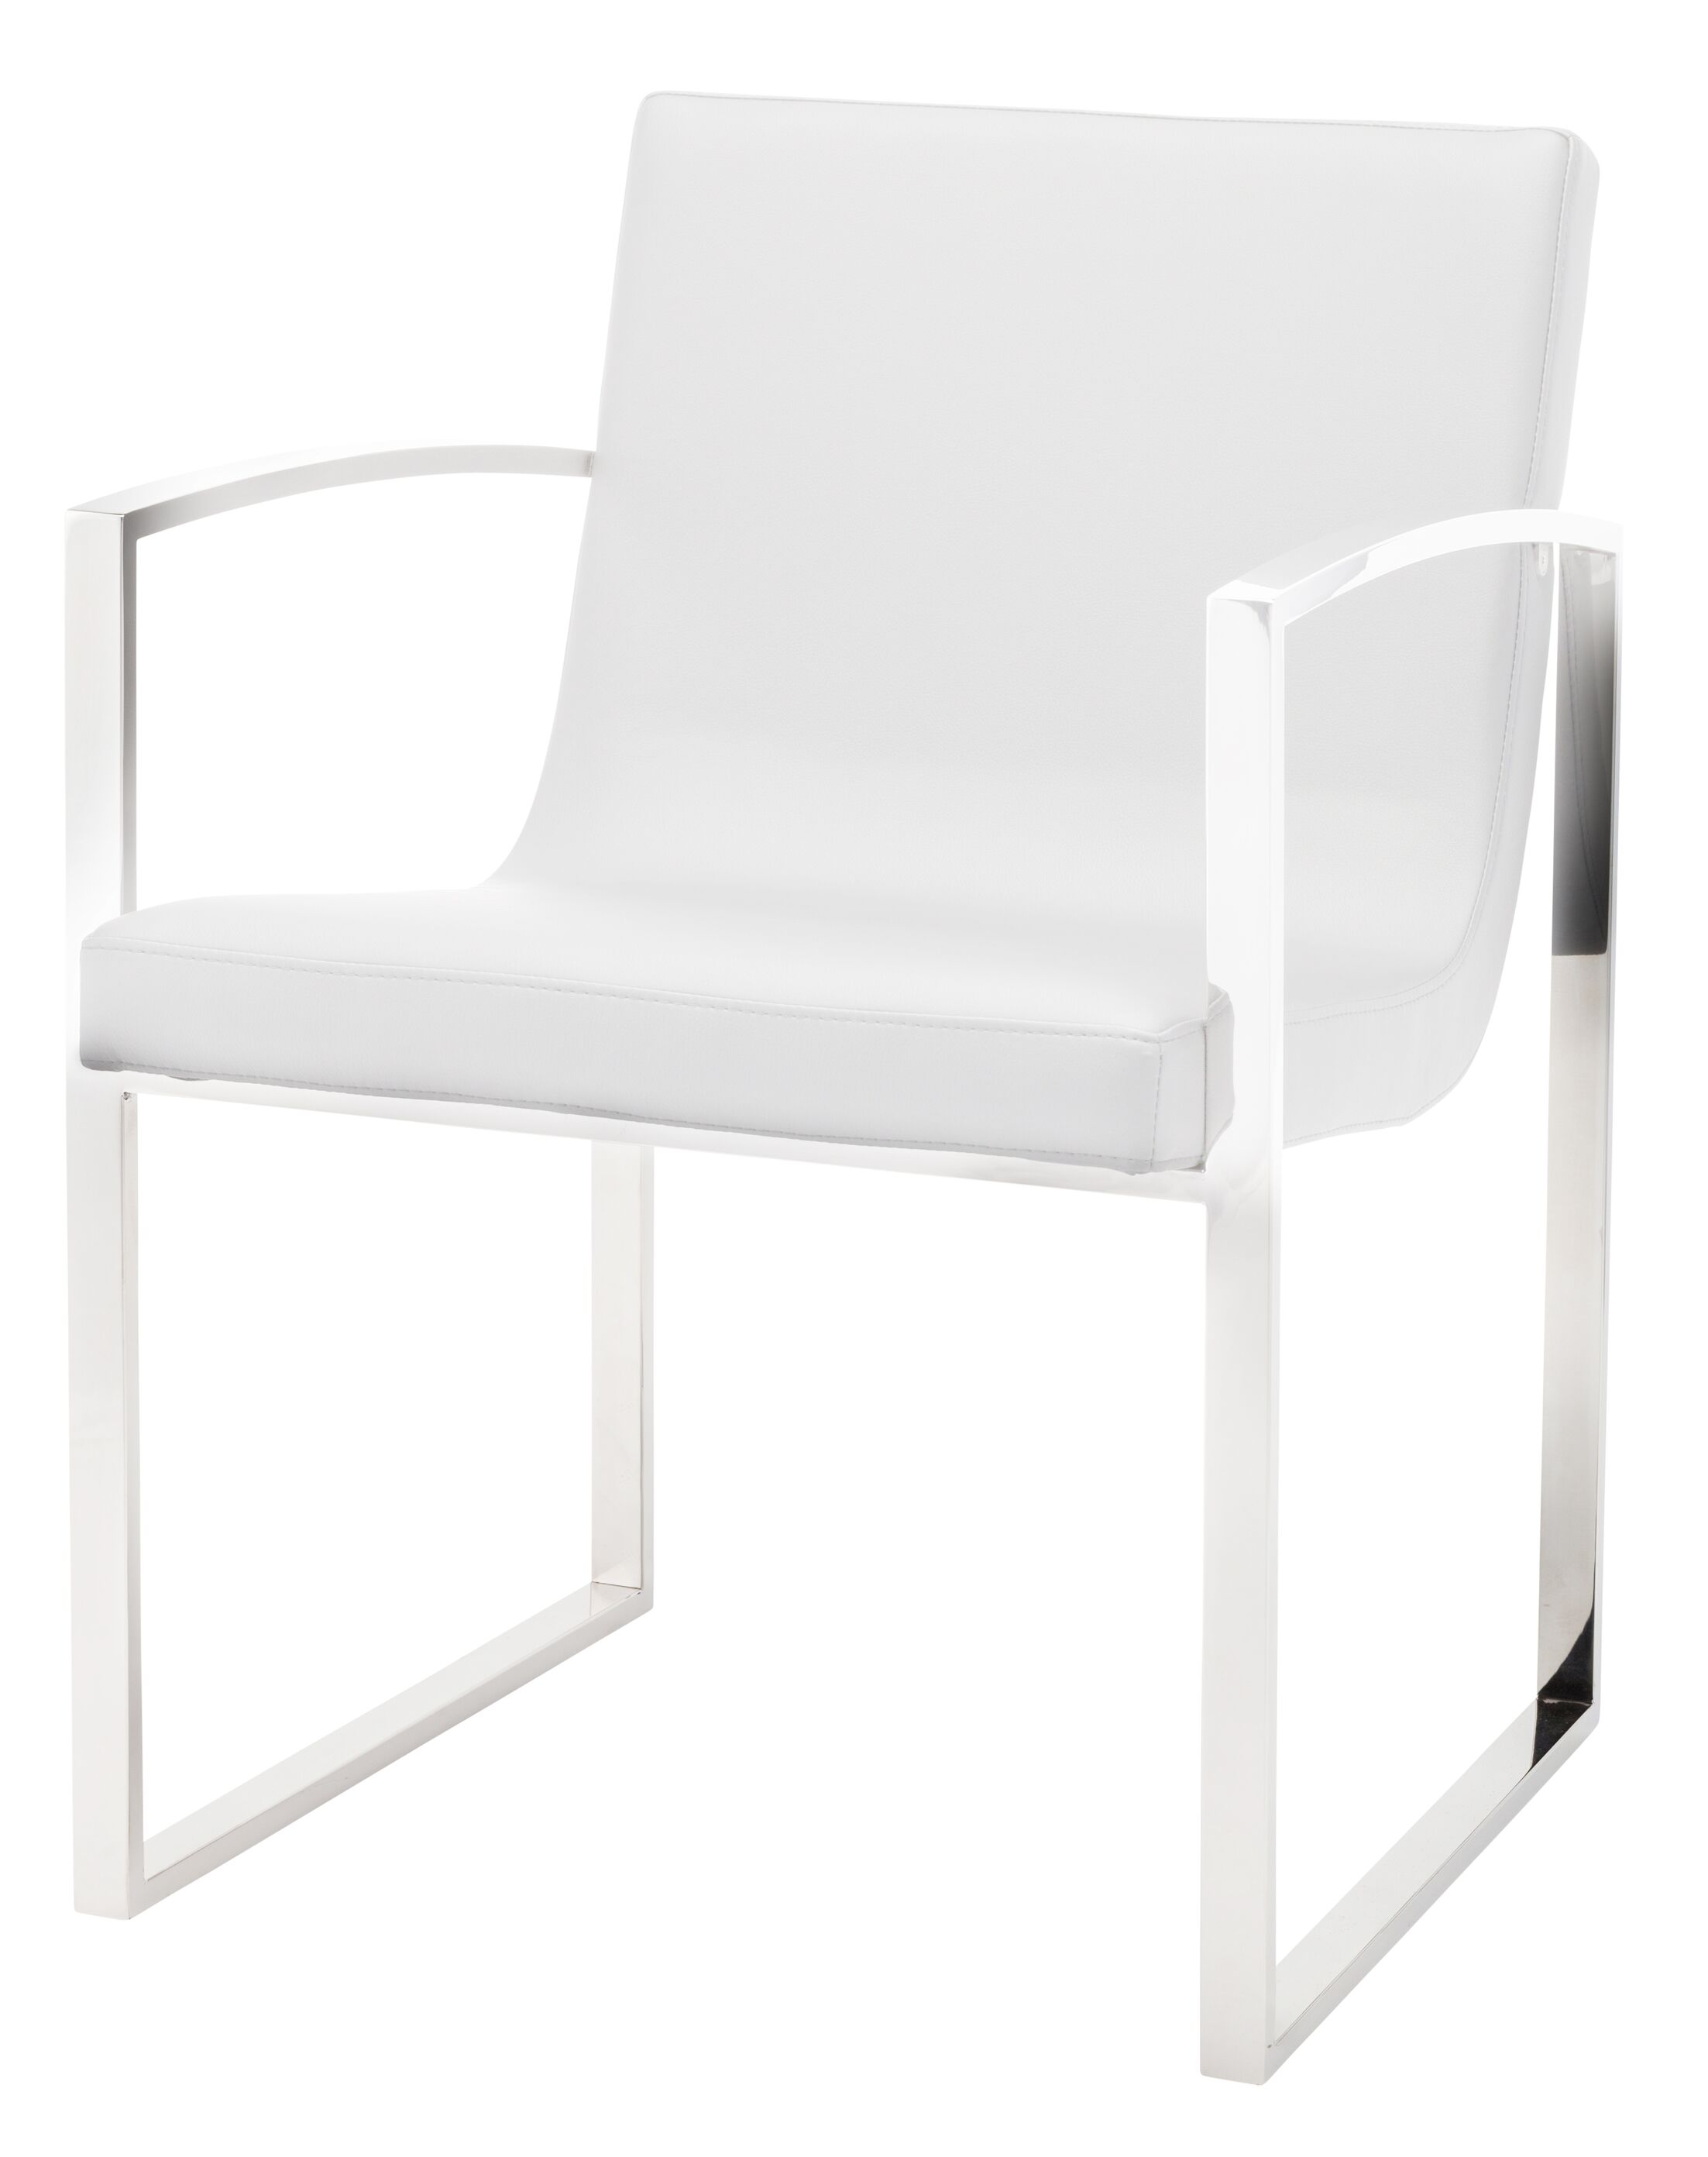 Clara Arm Chair Finish: Polished Stainless Steel, Upholstery Color: White